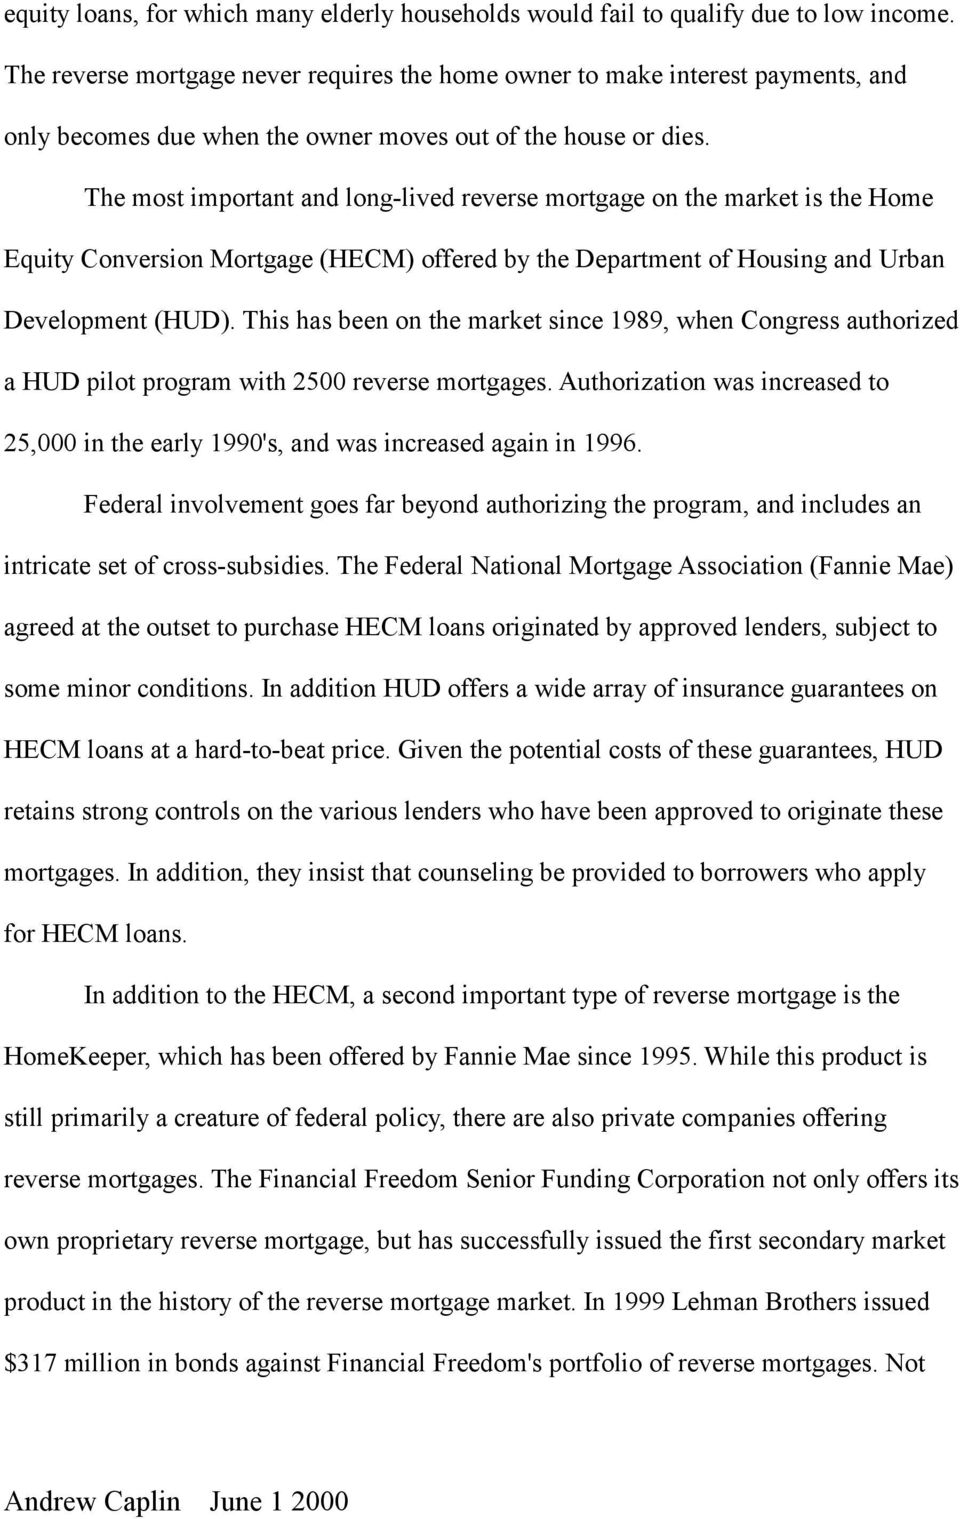 The most important and long-lived reverse mortgage on the market is the Home Equity Conversion Mortgage (HECM) offered by the Department of Housing and Urban Development (HUD).